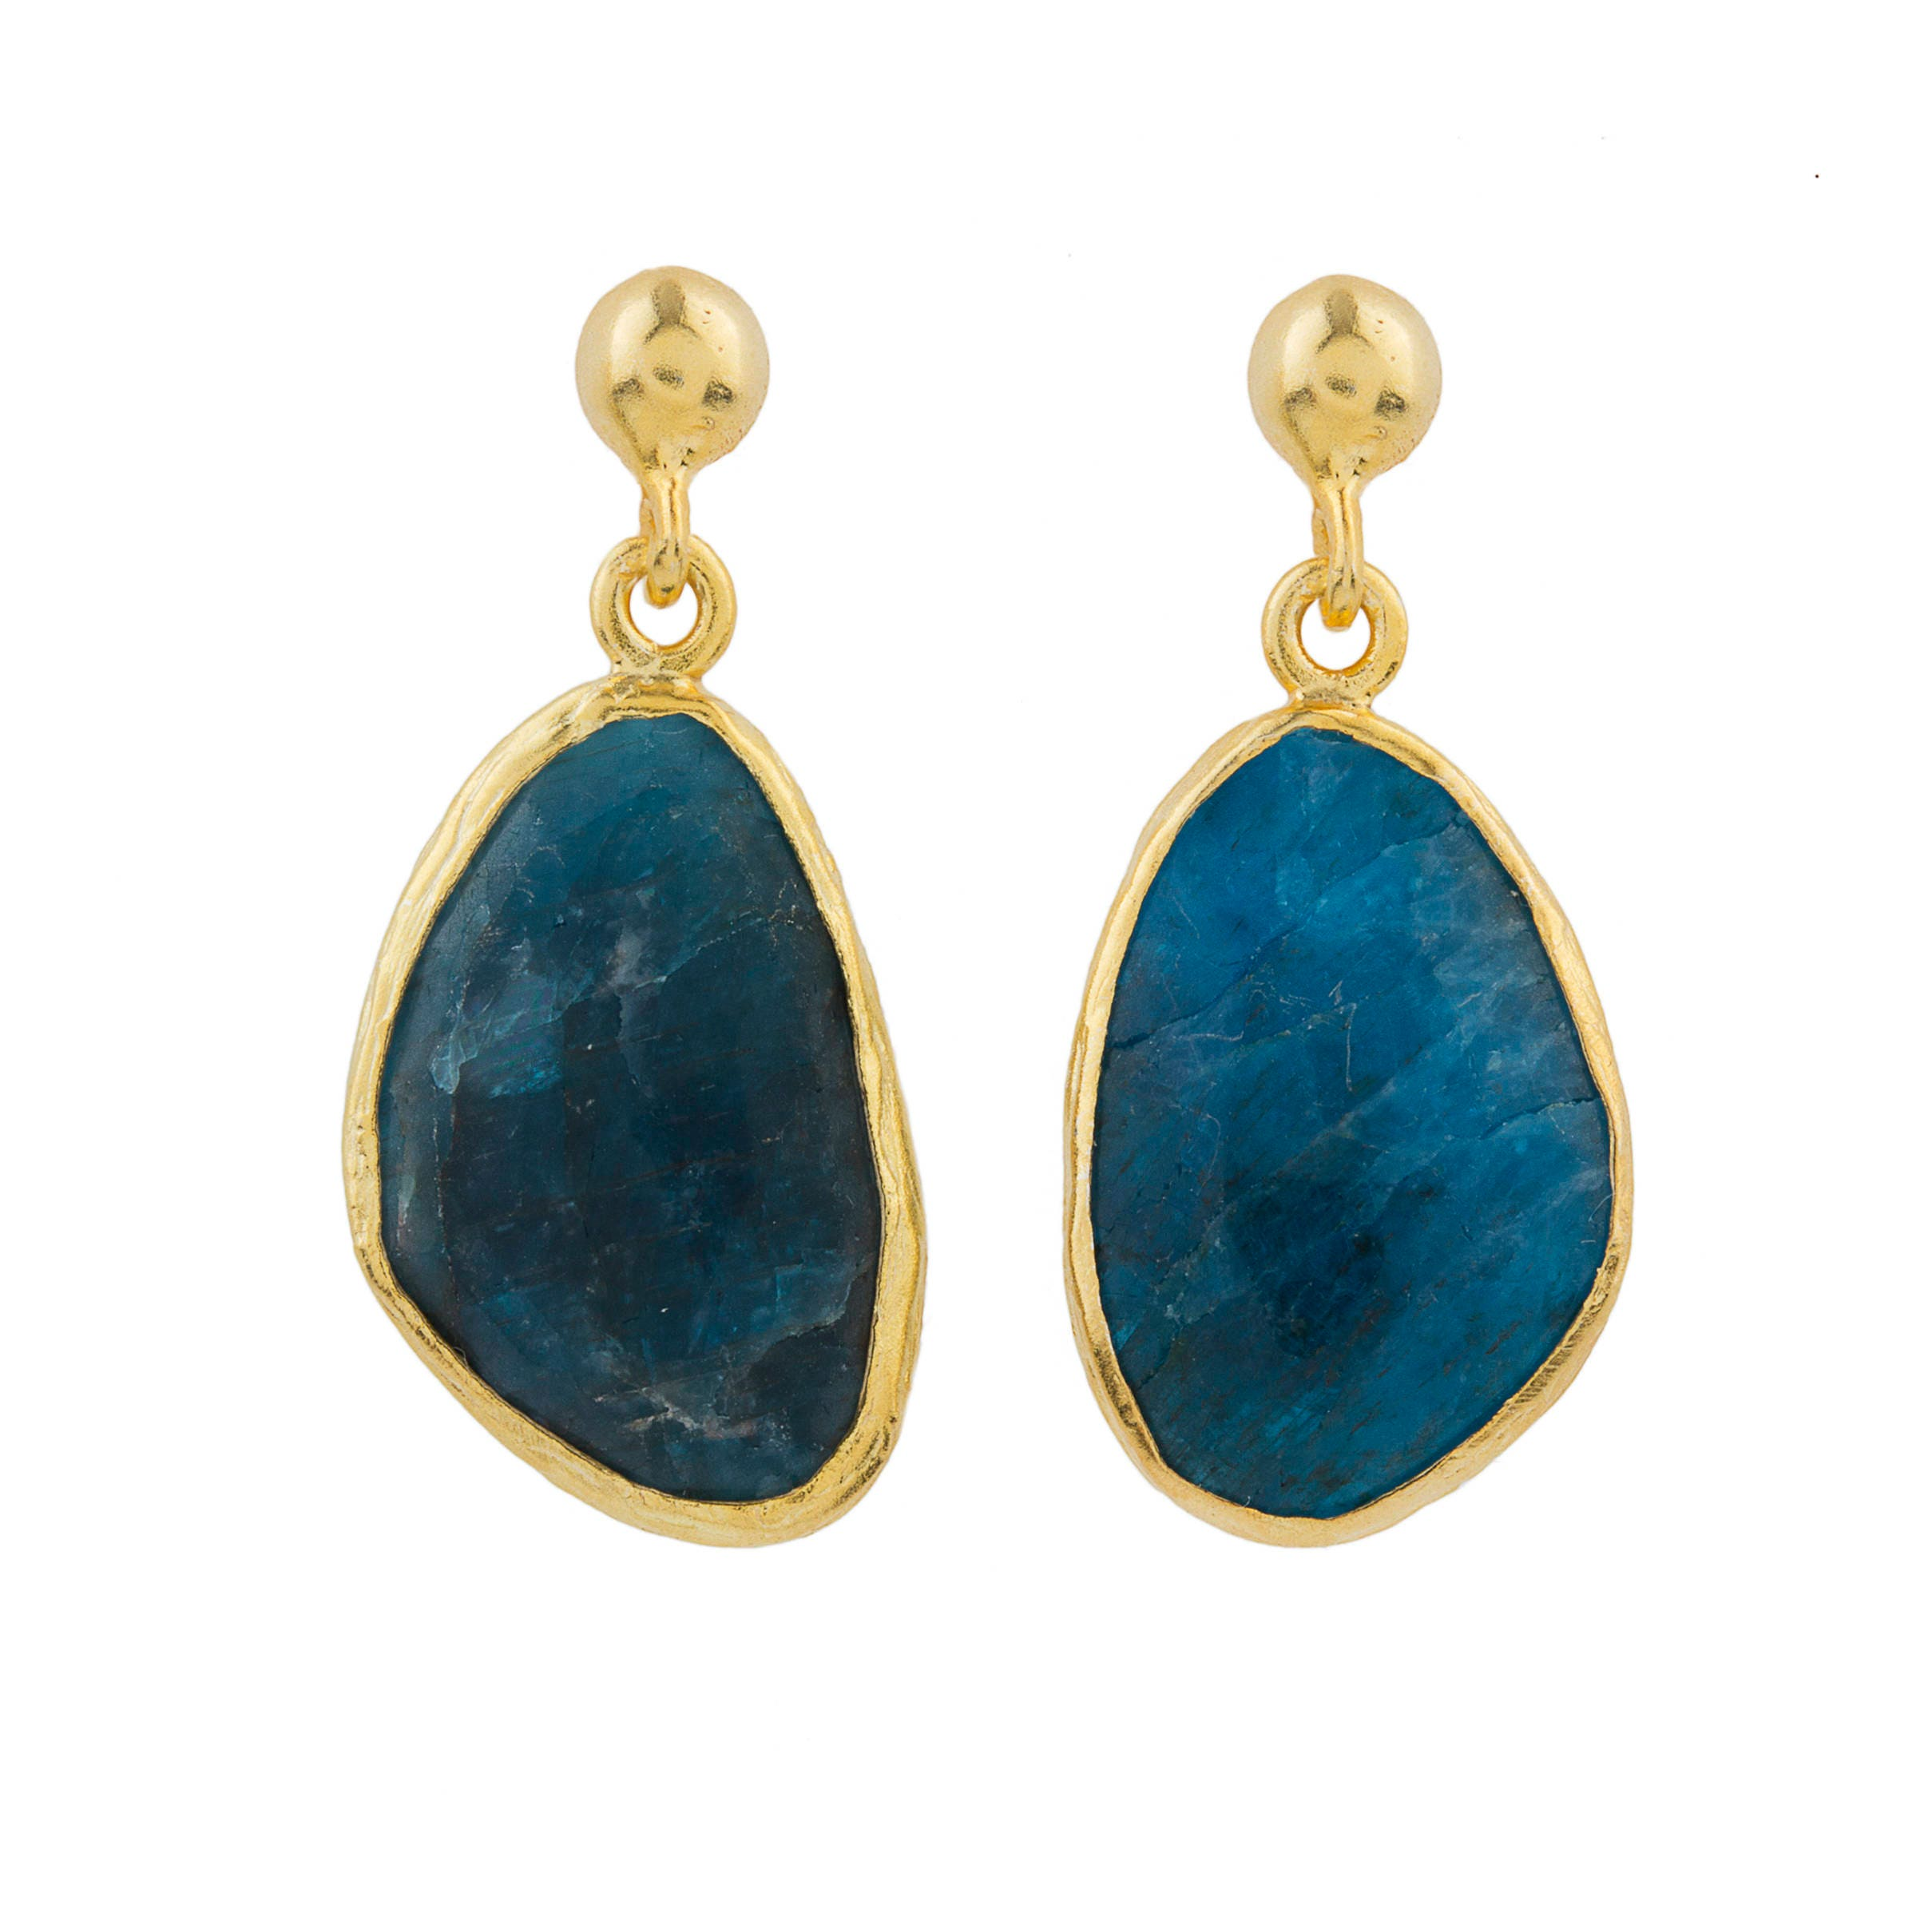 lg statement earrings in kendra jewelry default scott categories brass danielle aqua apatite